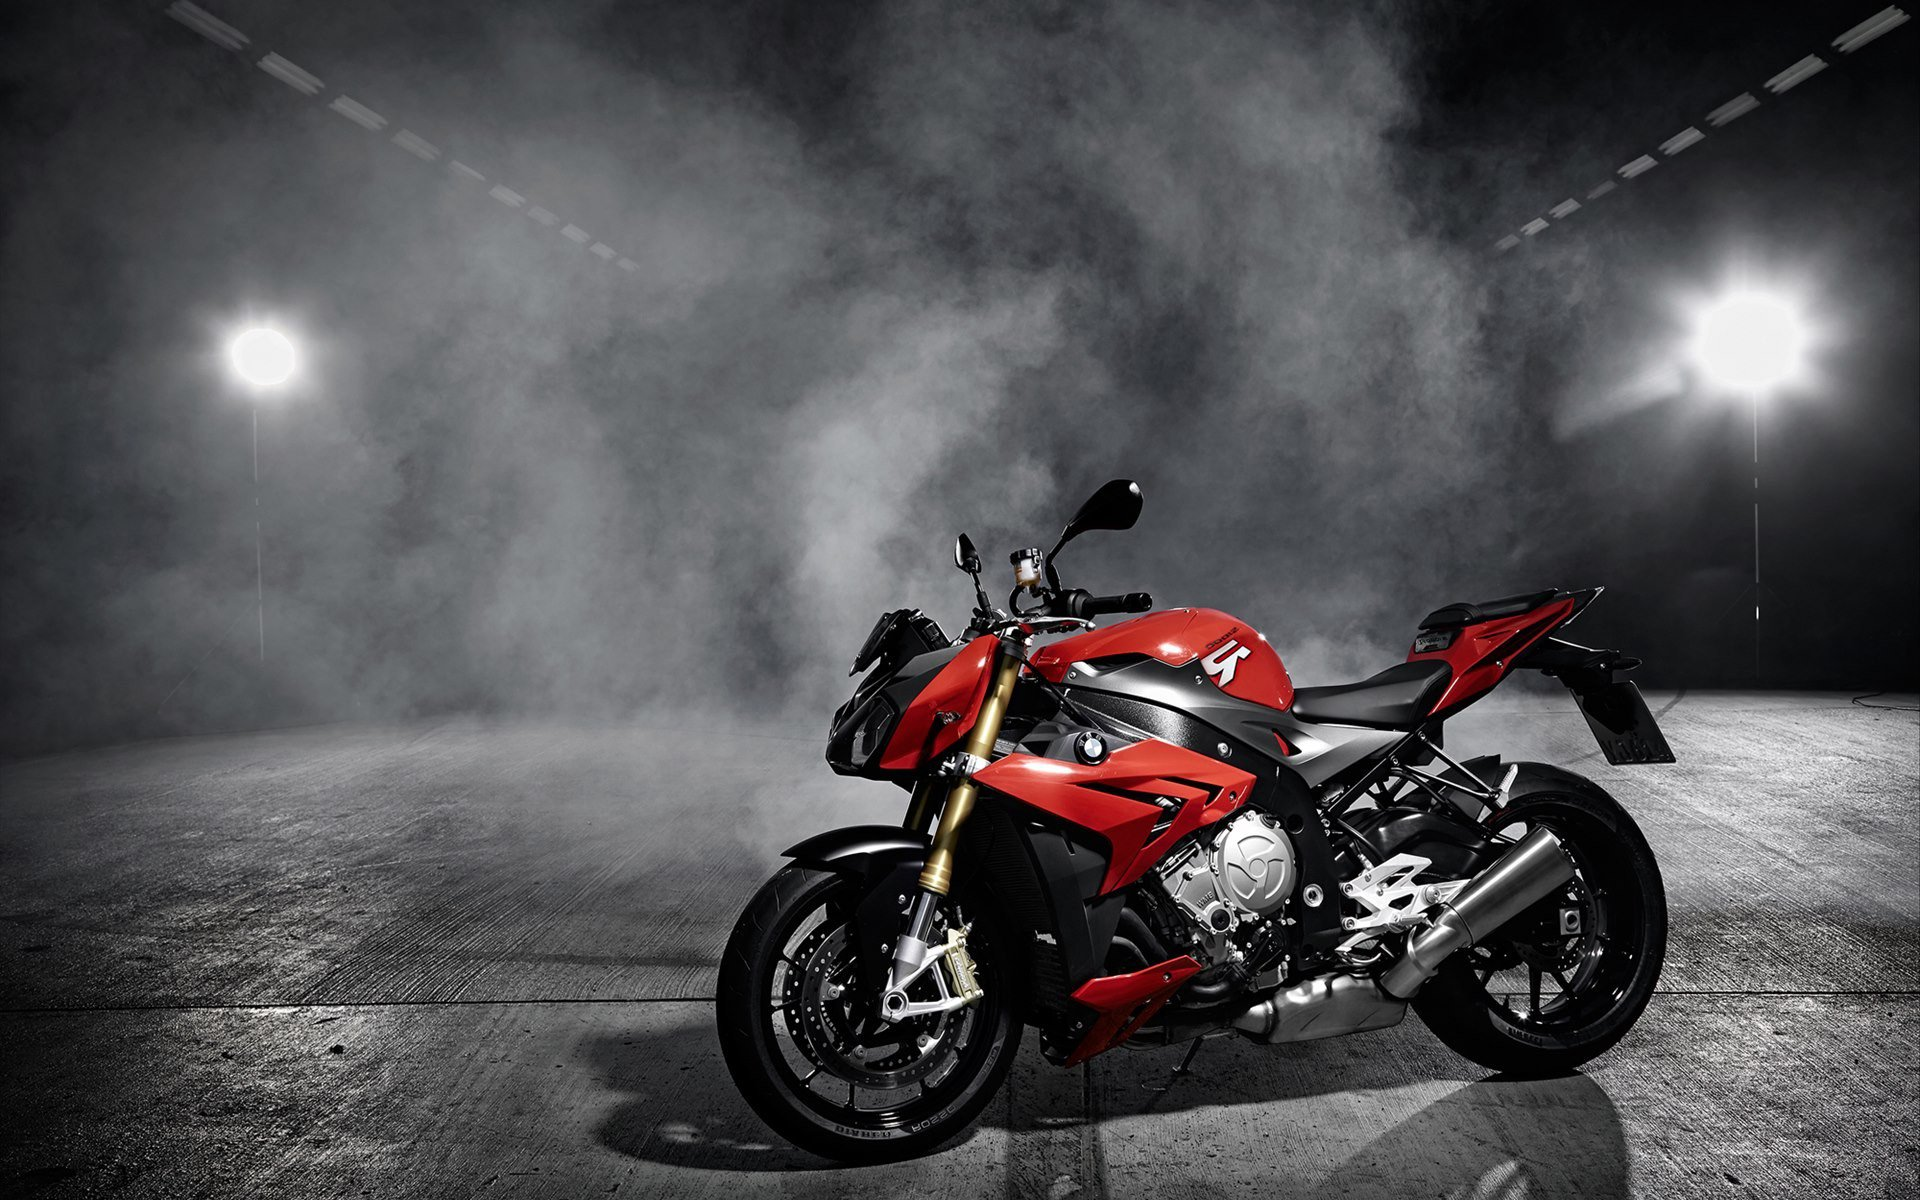 BMW S1000R, HD Bikes, 4k Wallpapers, Images, Backgrounds